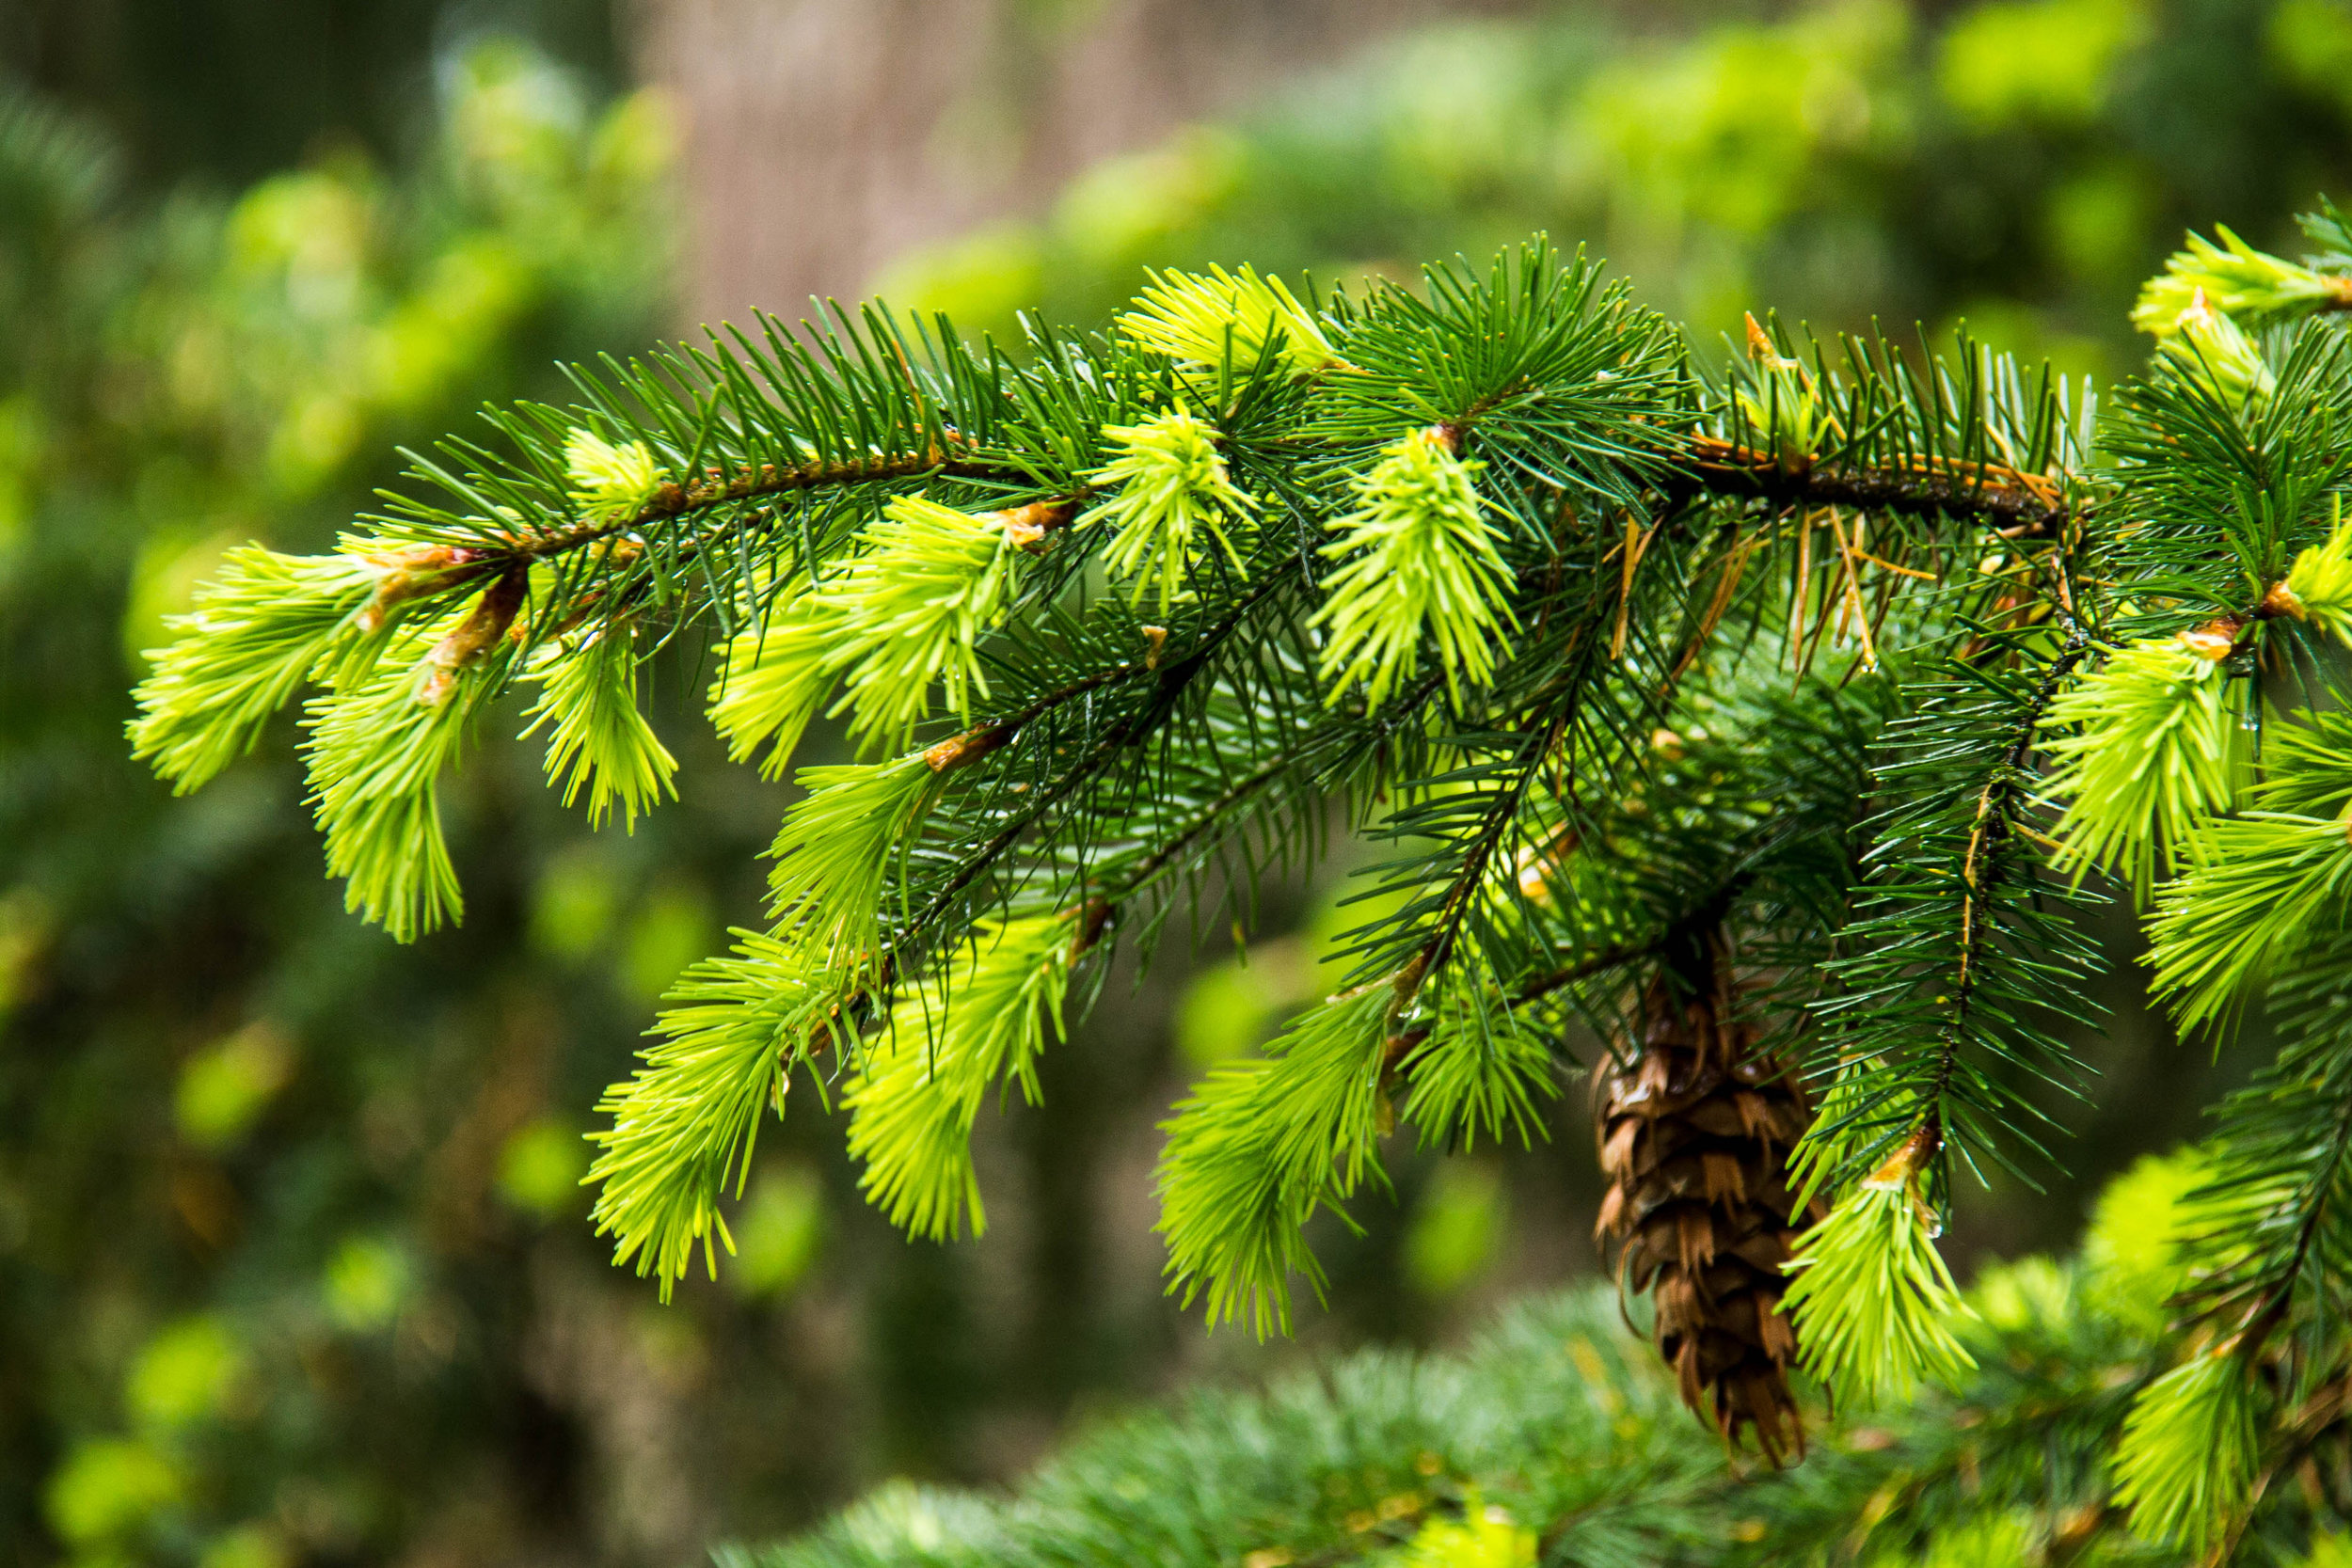 The view out my window all week has been of the new spring growth of conifers